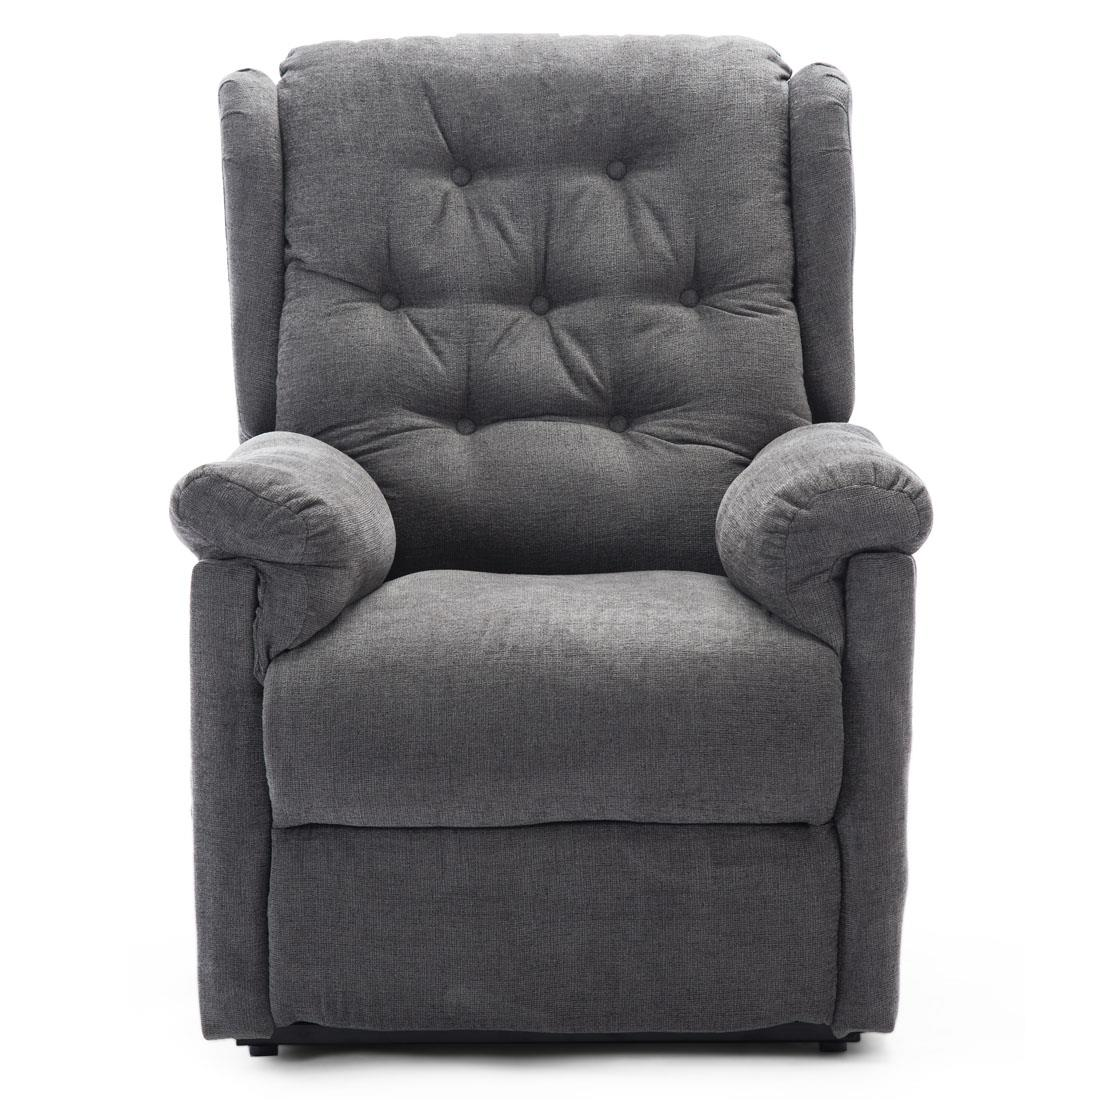 BARNSLEY FABRIC ELECTRIC RISE RISER RECLINER MOBILITY SOFA ...